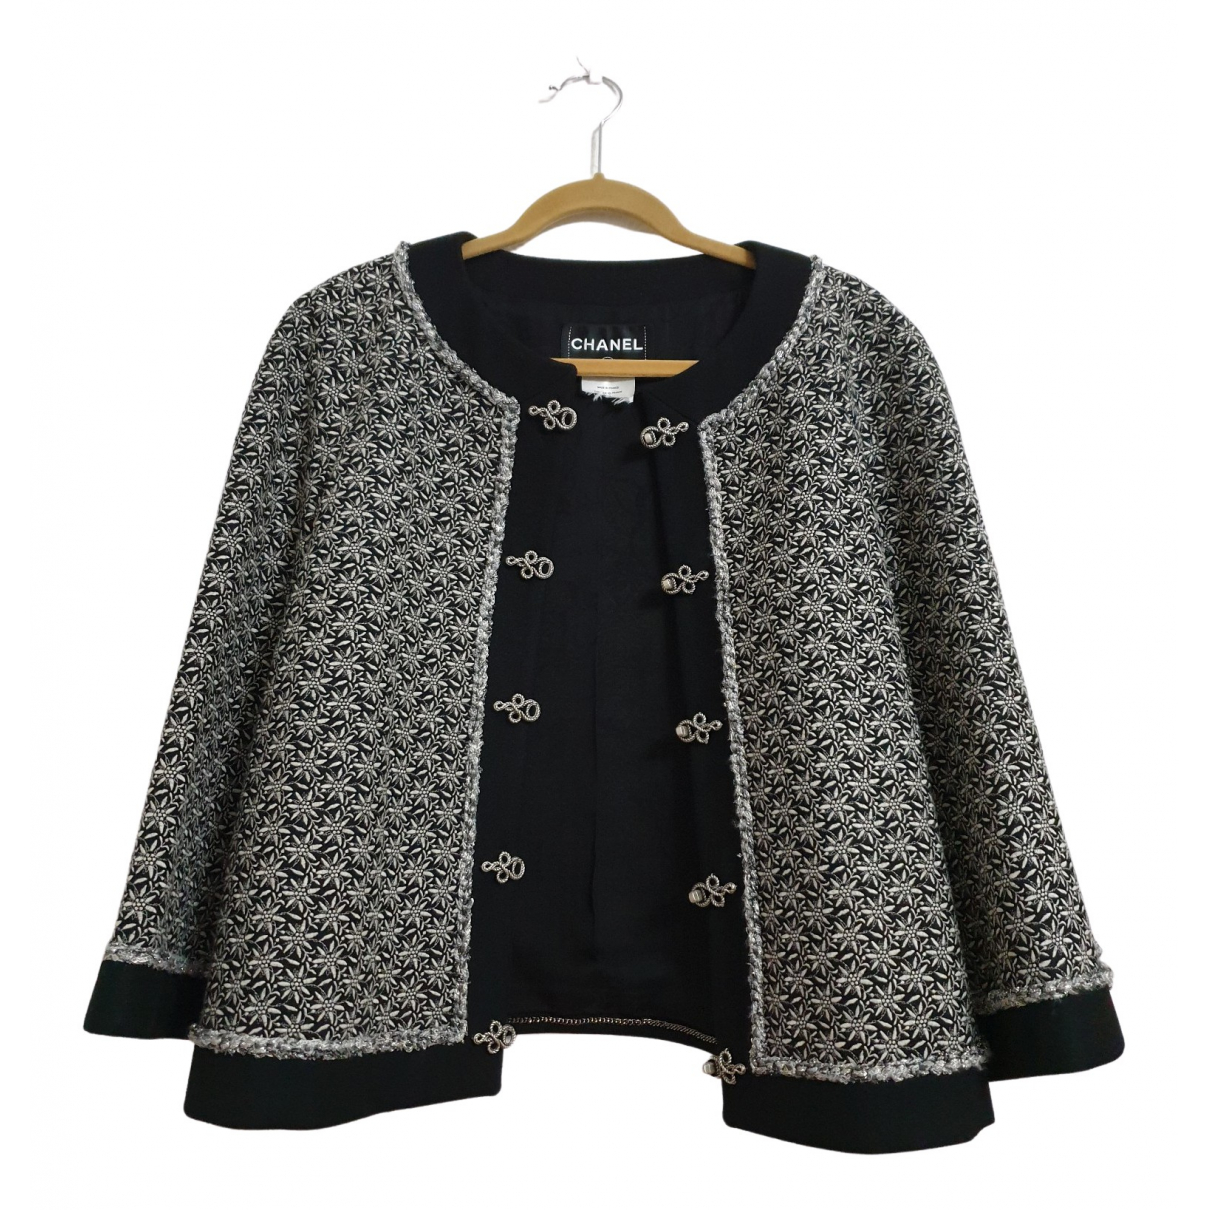 Chanel \N Black Wool jacket for Women L International